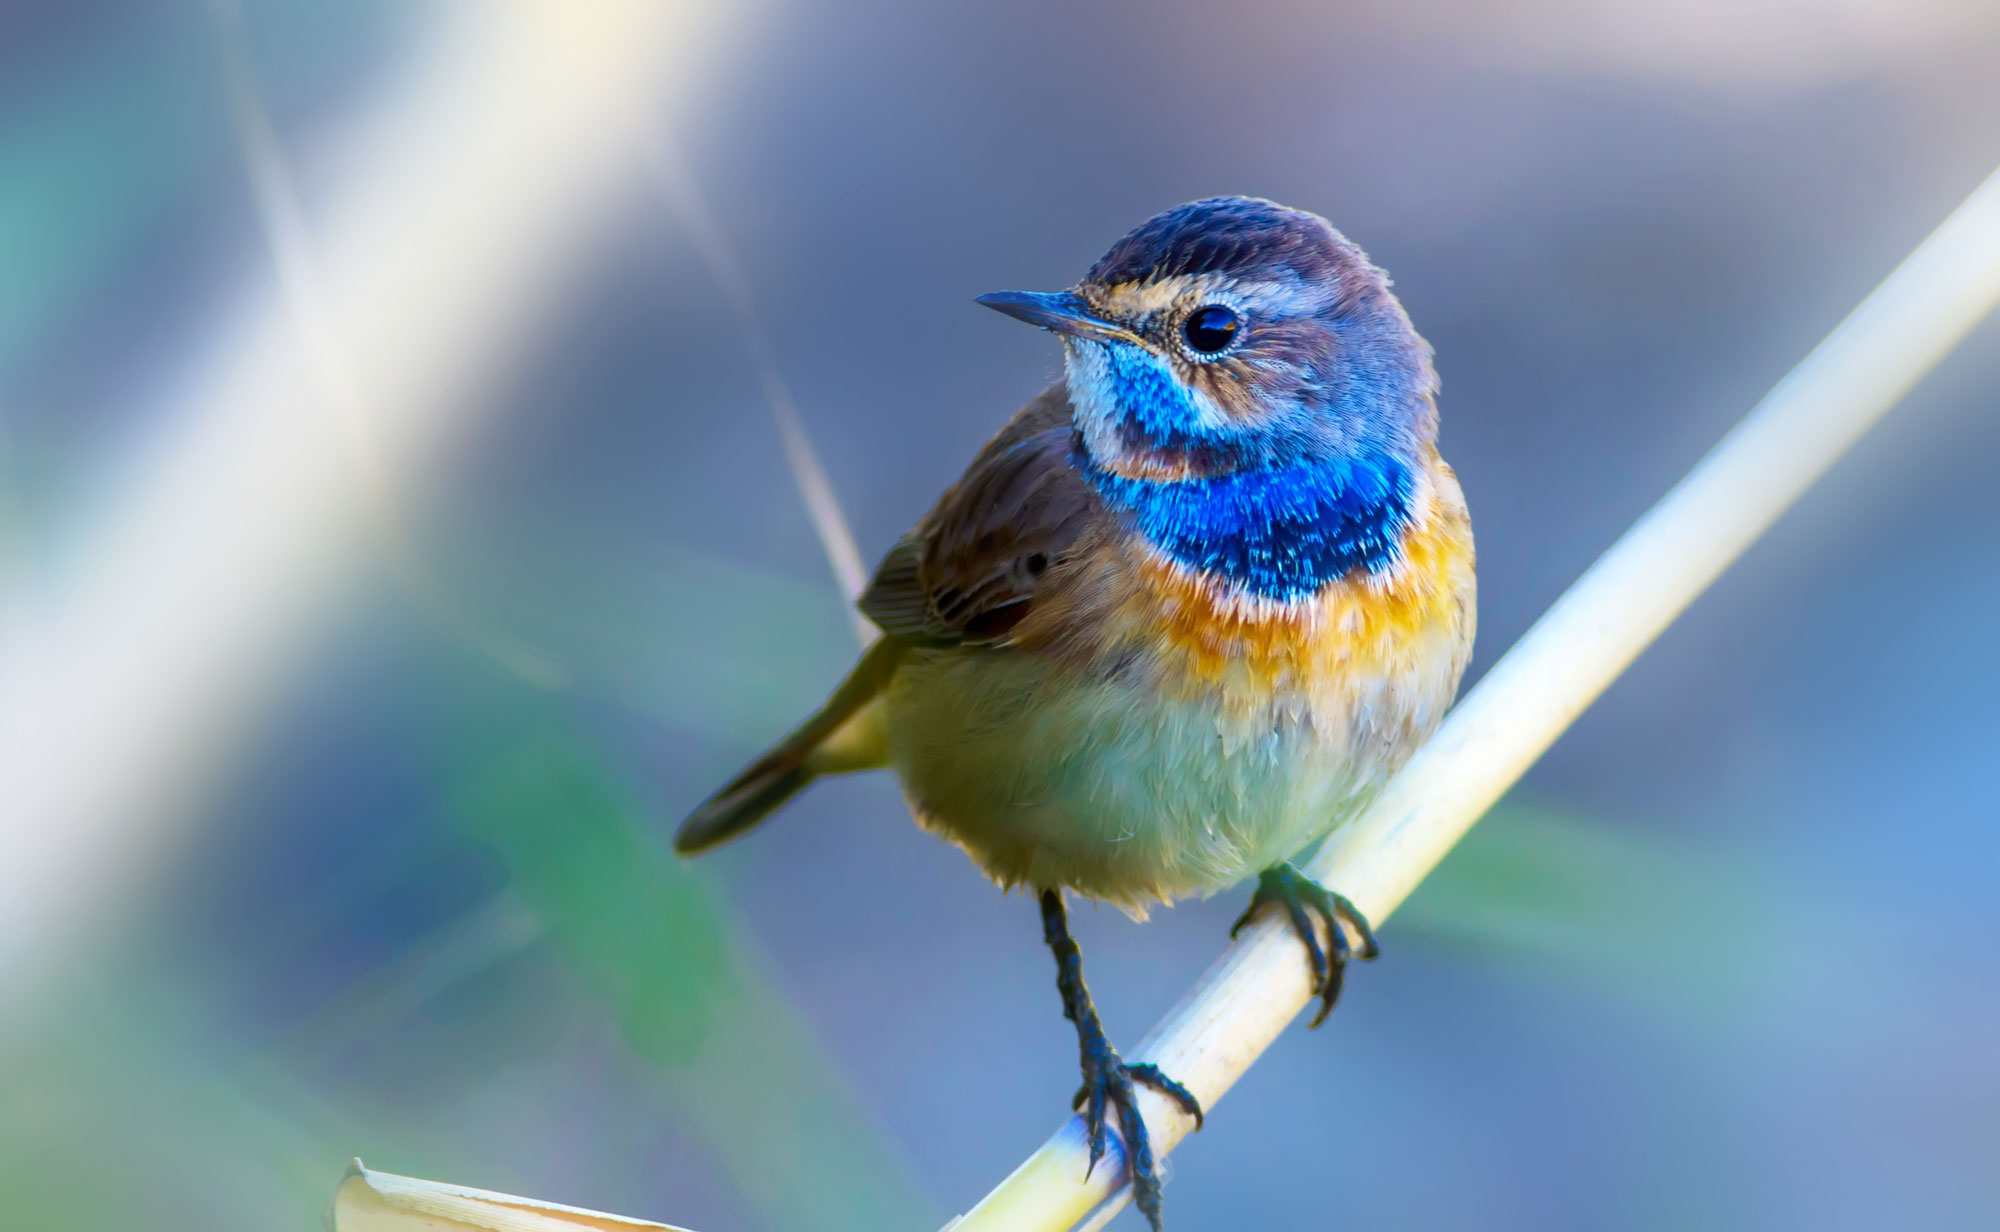 Backyard songbirds can make for great photos and you need not travel farther than your backyard!